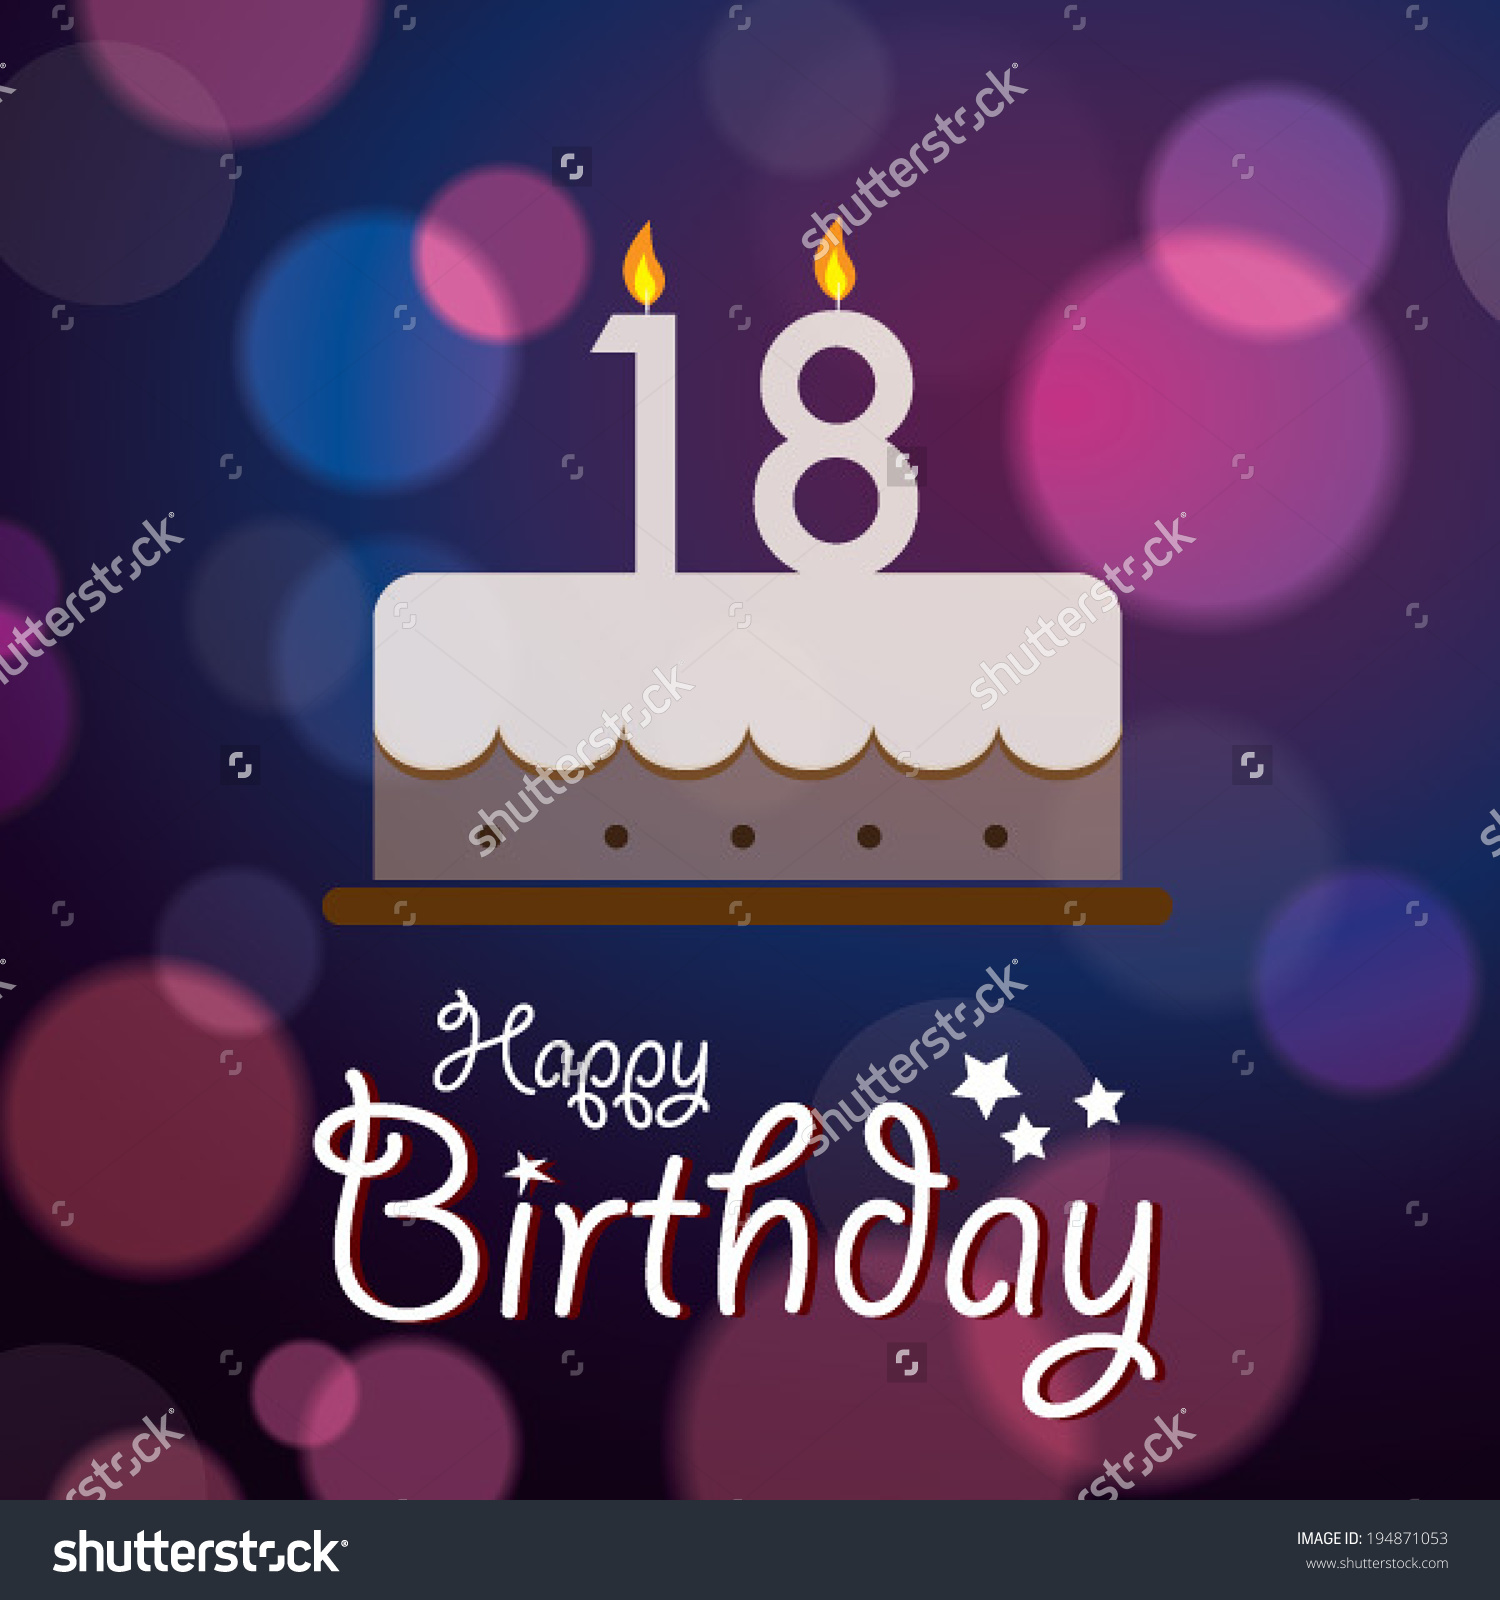 Happy 18 Birthday Wallpaper